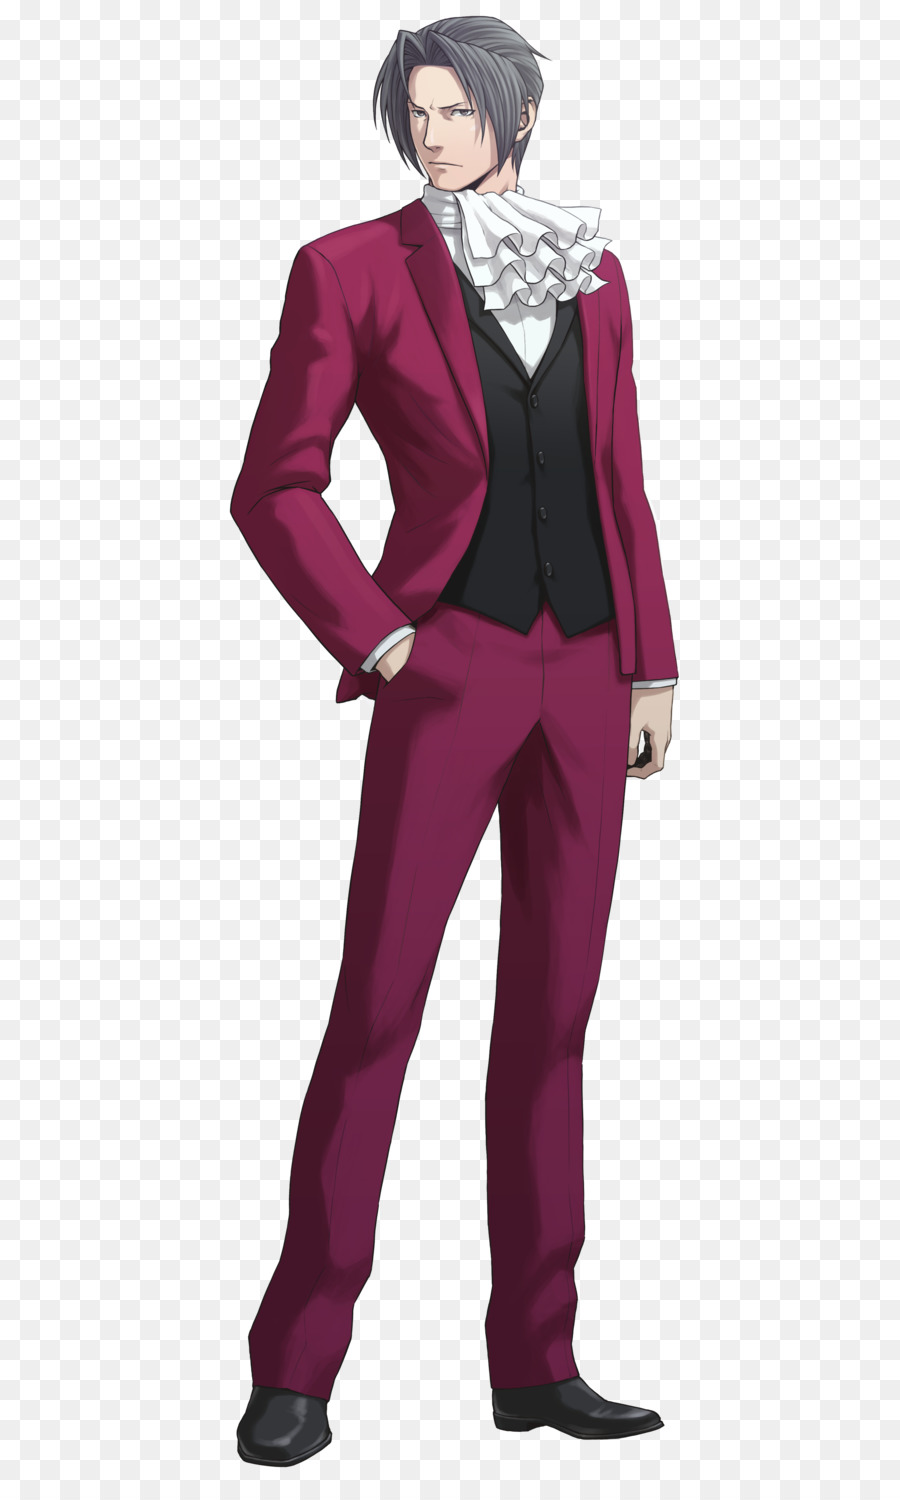 Ace Attorney Miles Edgeworth Png Clipart Phoenix Wright Ace